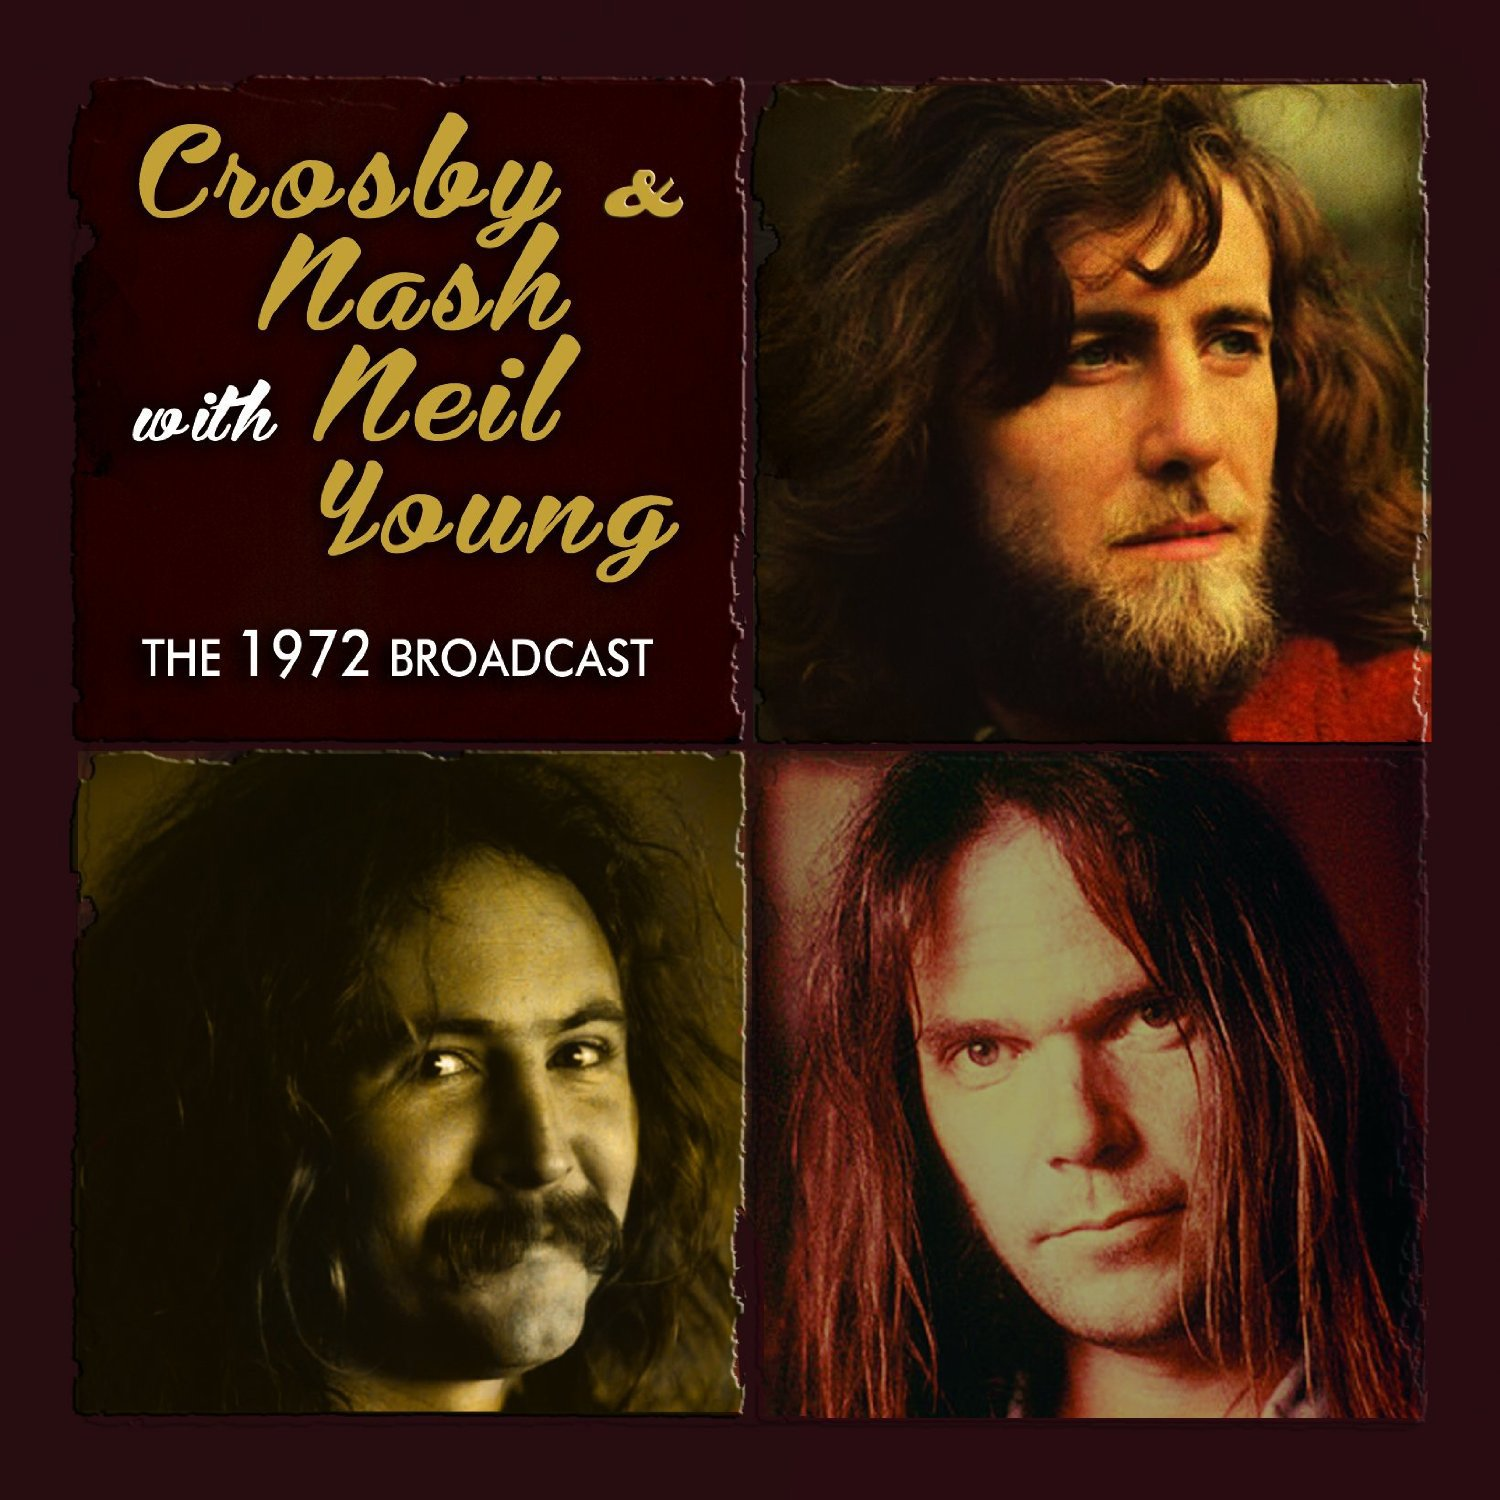 Crosby & Nash with Neil Young-The 1972 Broadcast